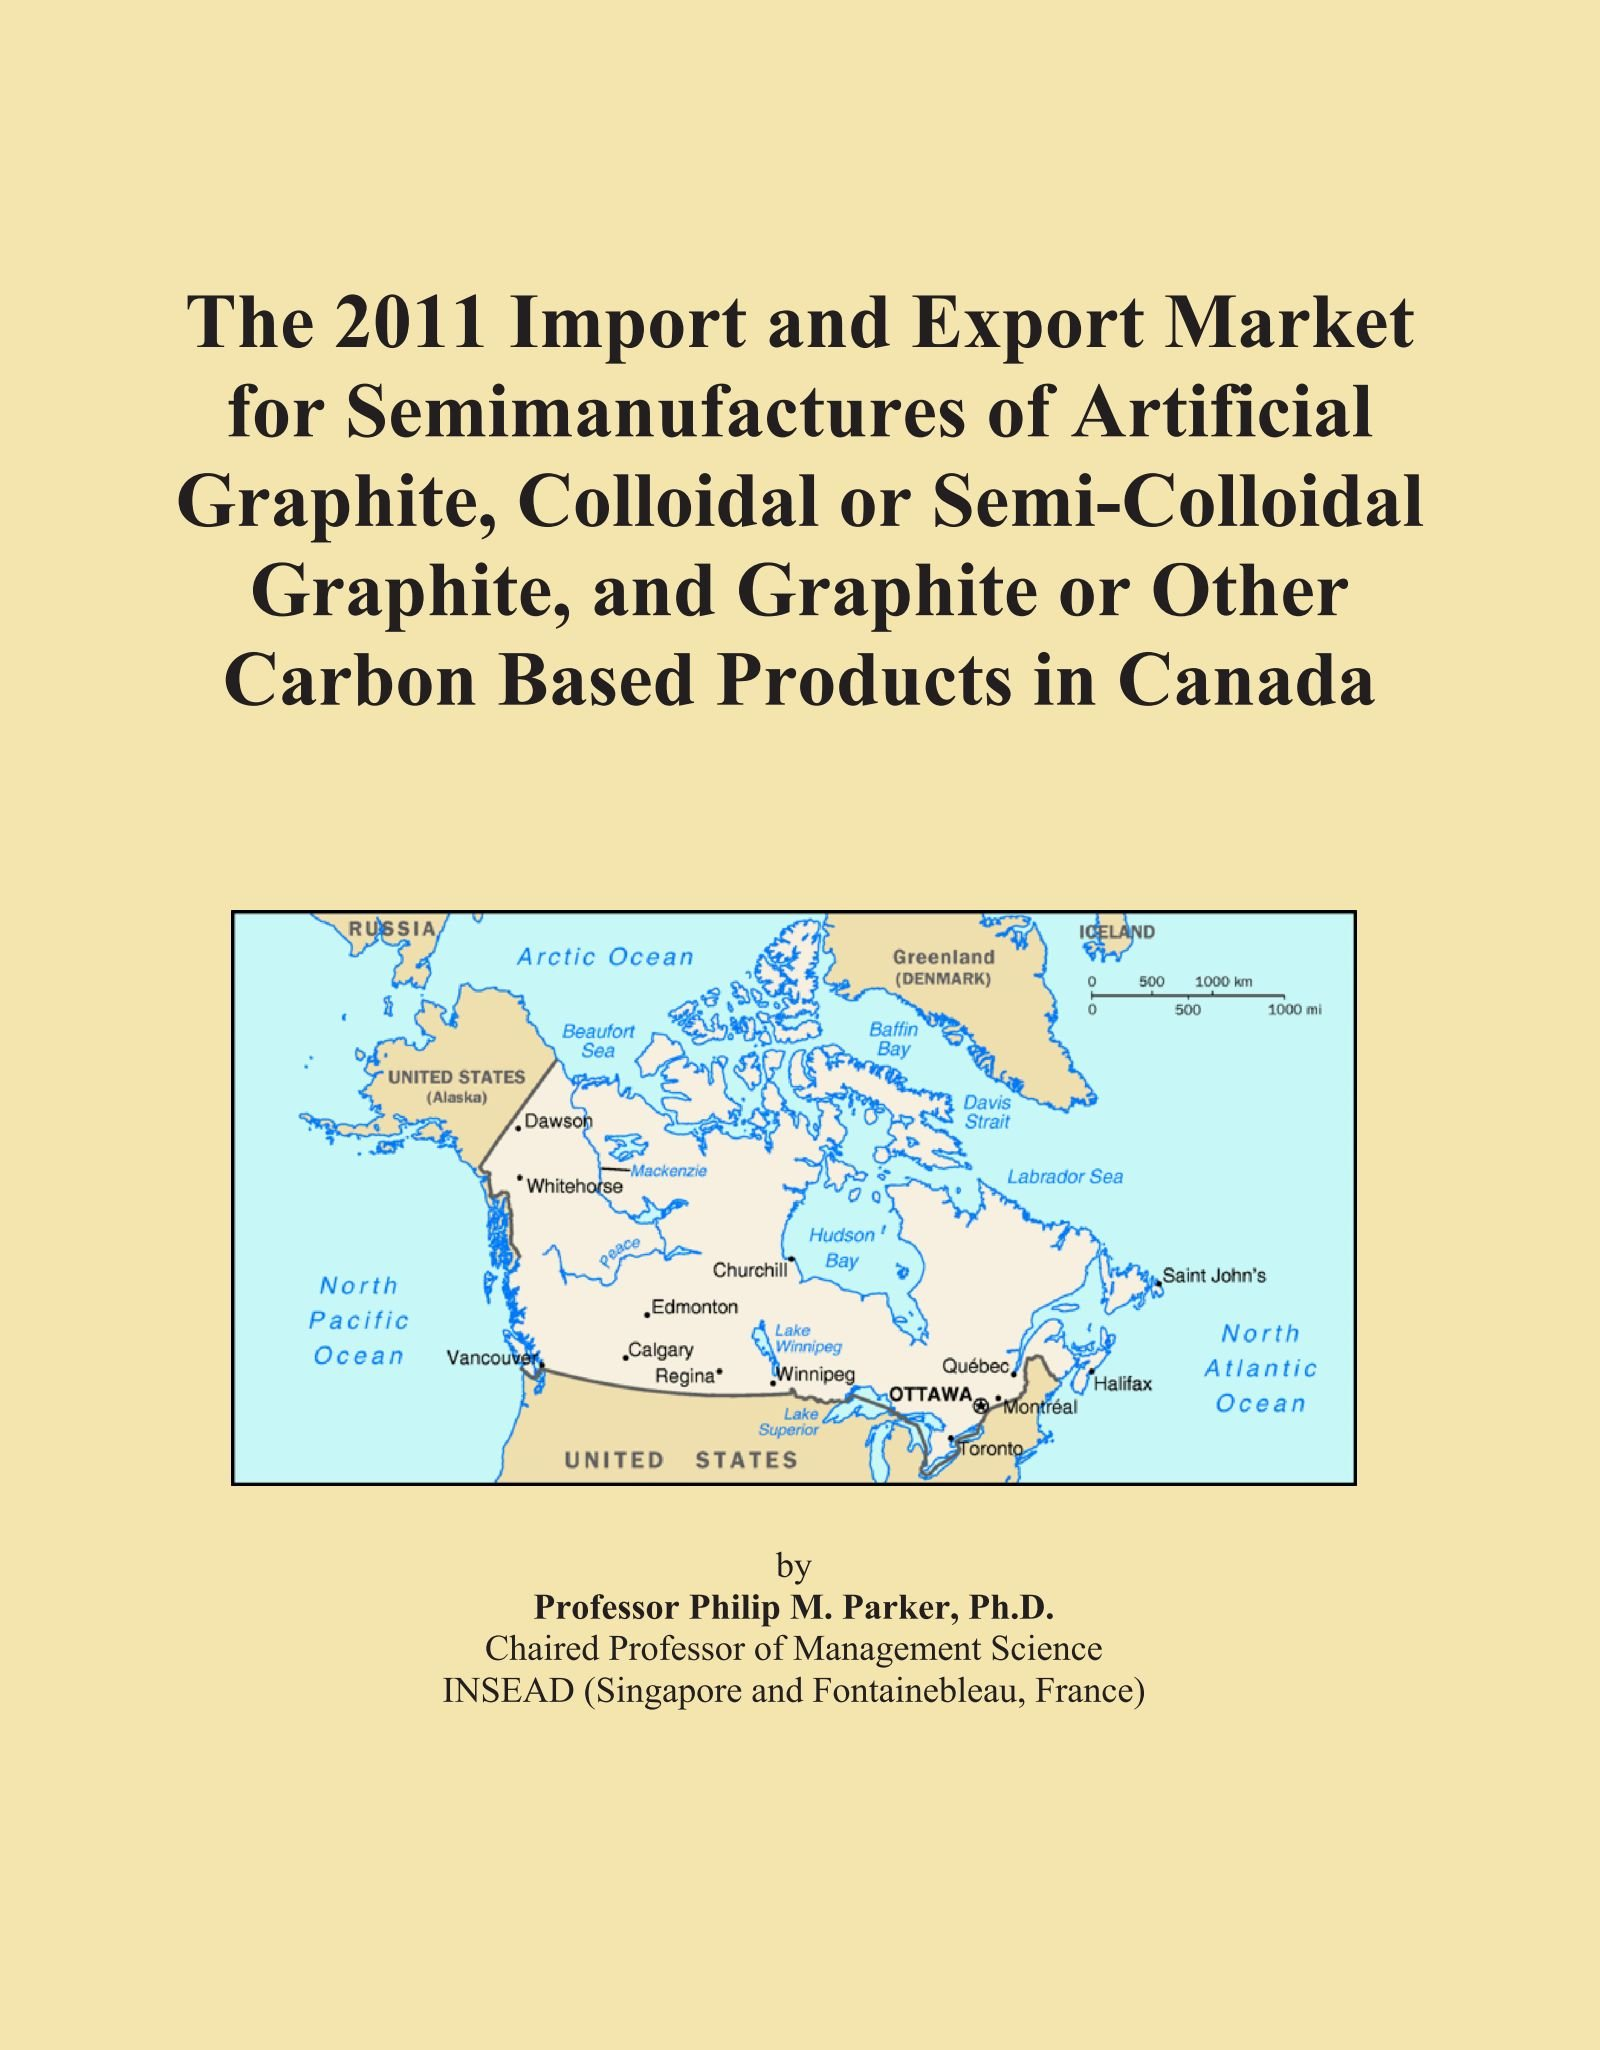 Download The 2011 Import and Export Market for Semimanufactures of Artificial Graphite, Colloidal or Semi-Colloidal Graphite, and Graphite or Other Carbon Based Products in Canada pdf